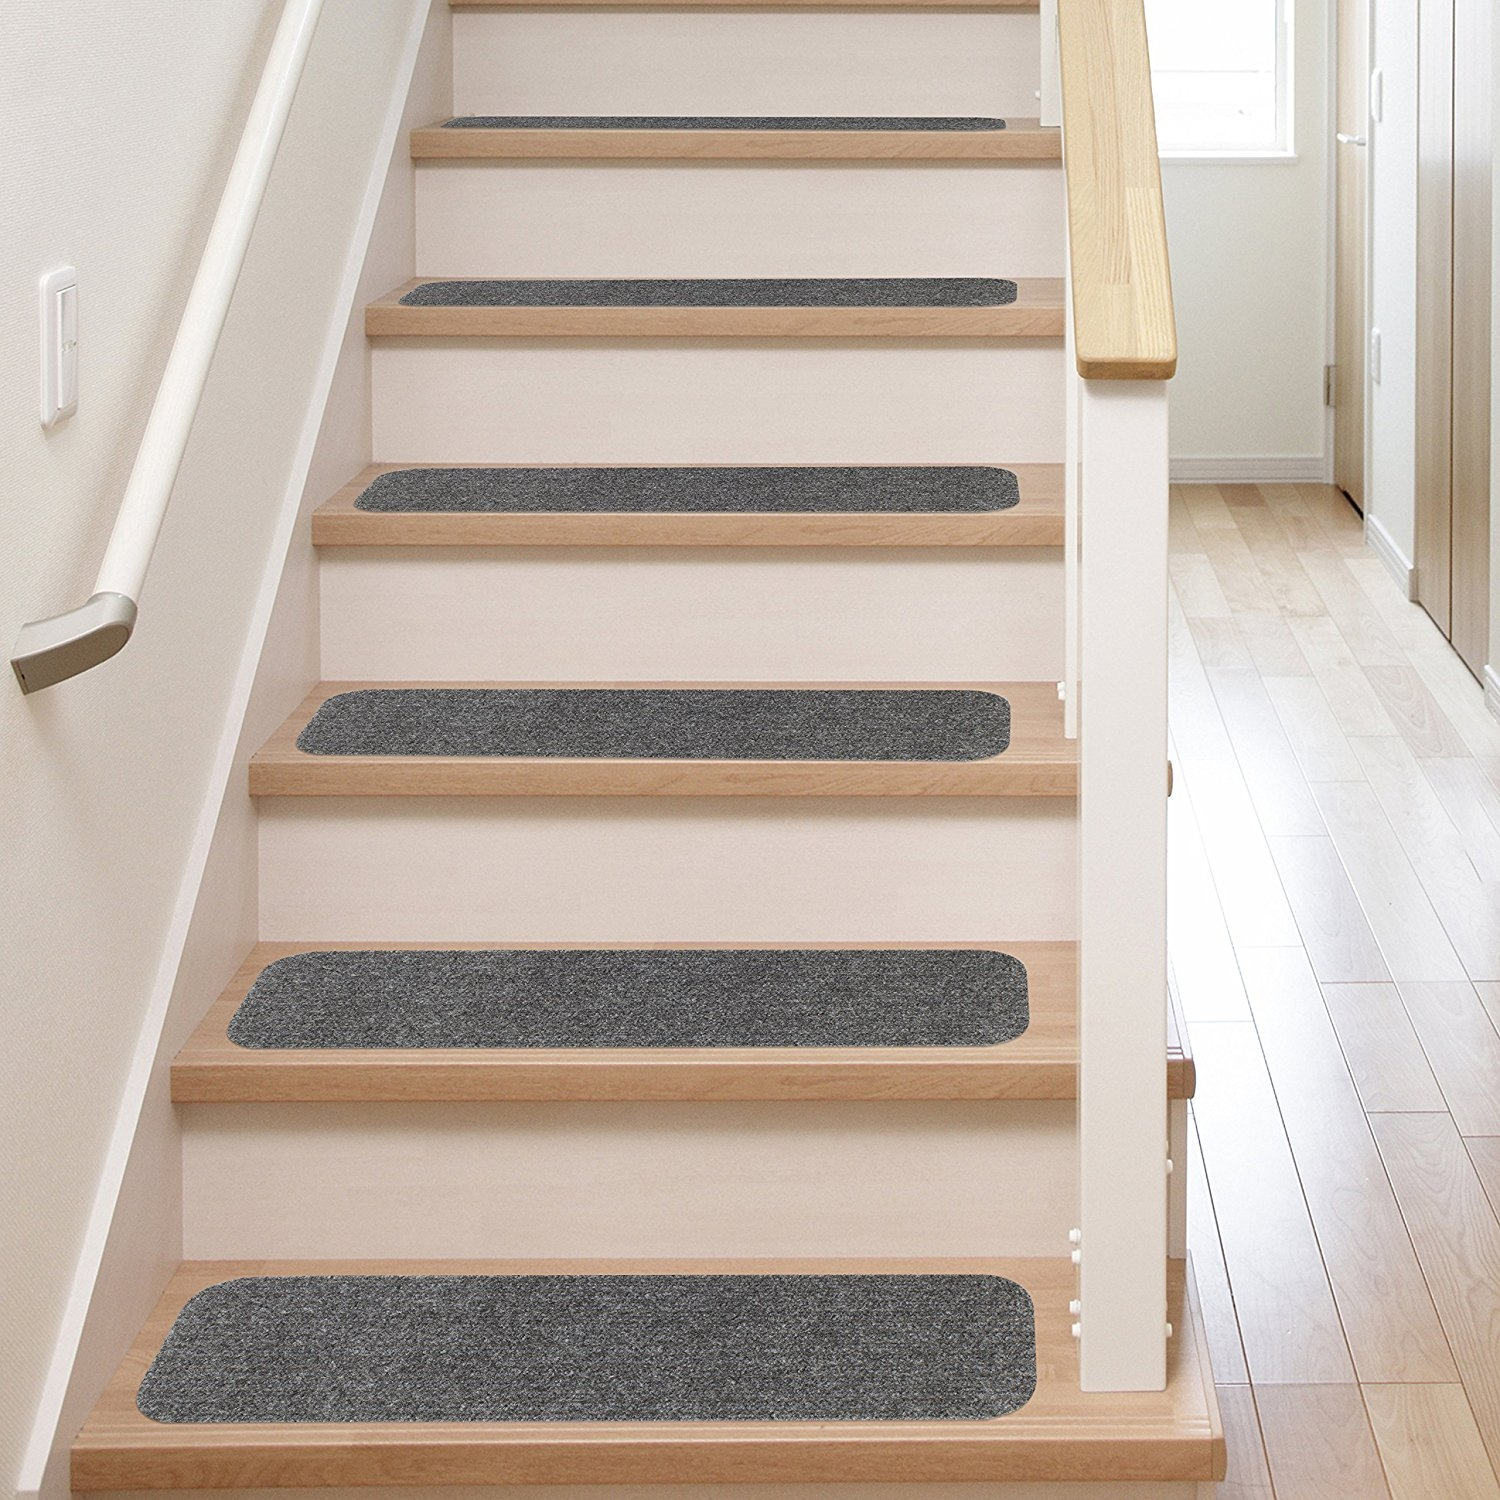 13 Stair Treads Non Slip Carpet Pads Easy Tape Installation Within Nonslip Stair Tread Rugs (#1 of 20)